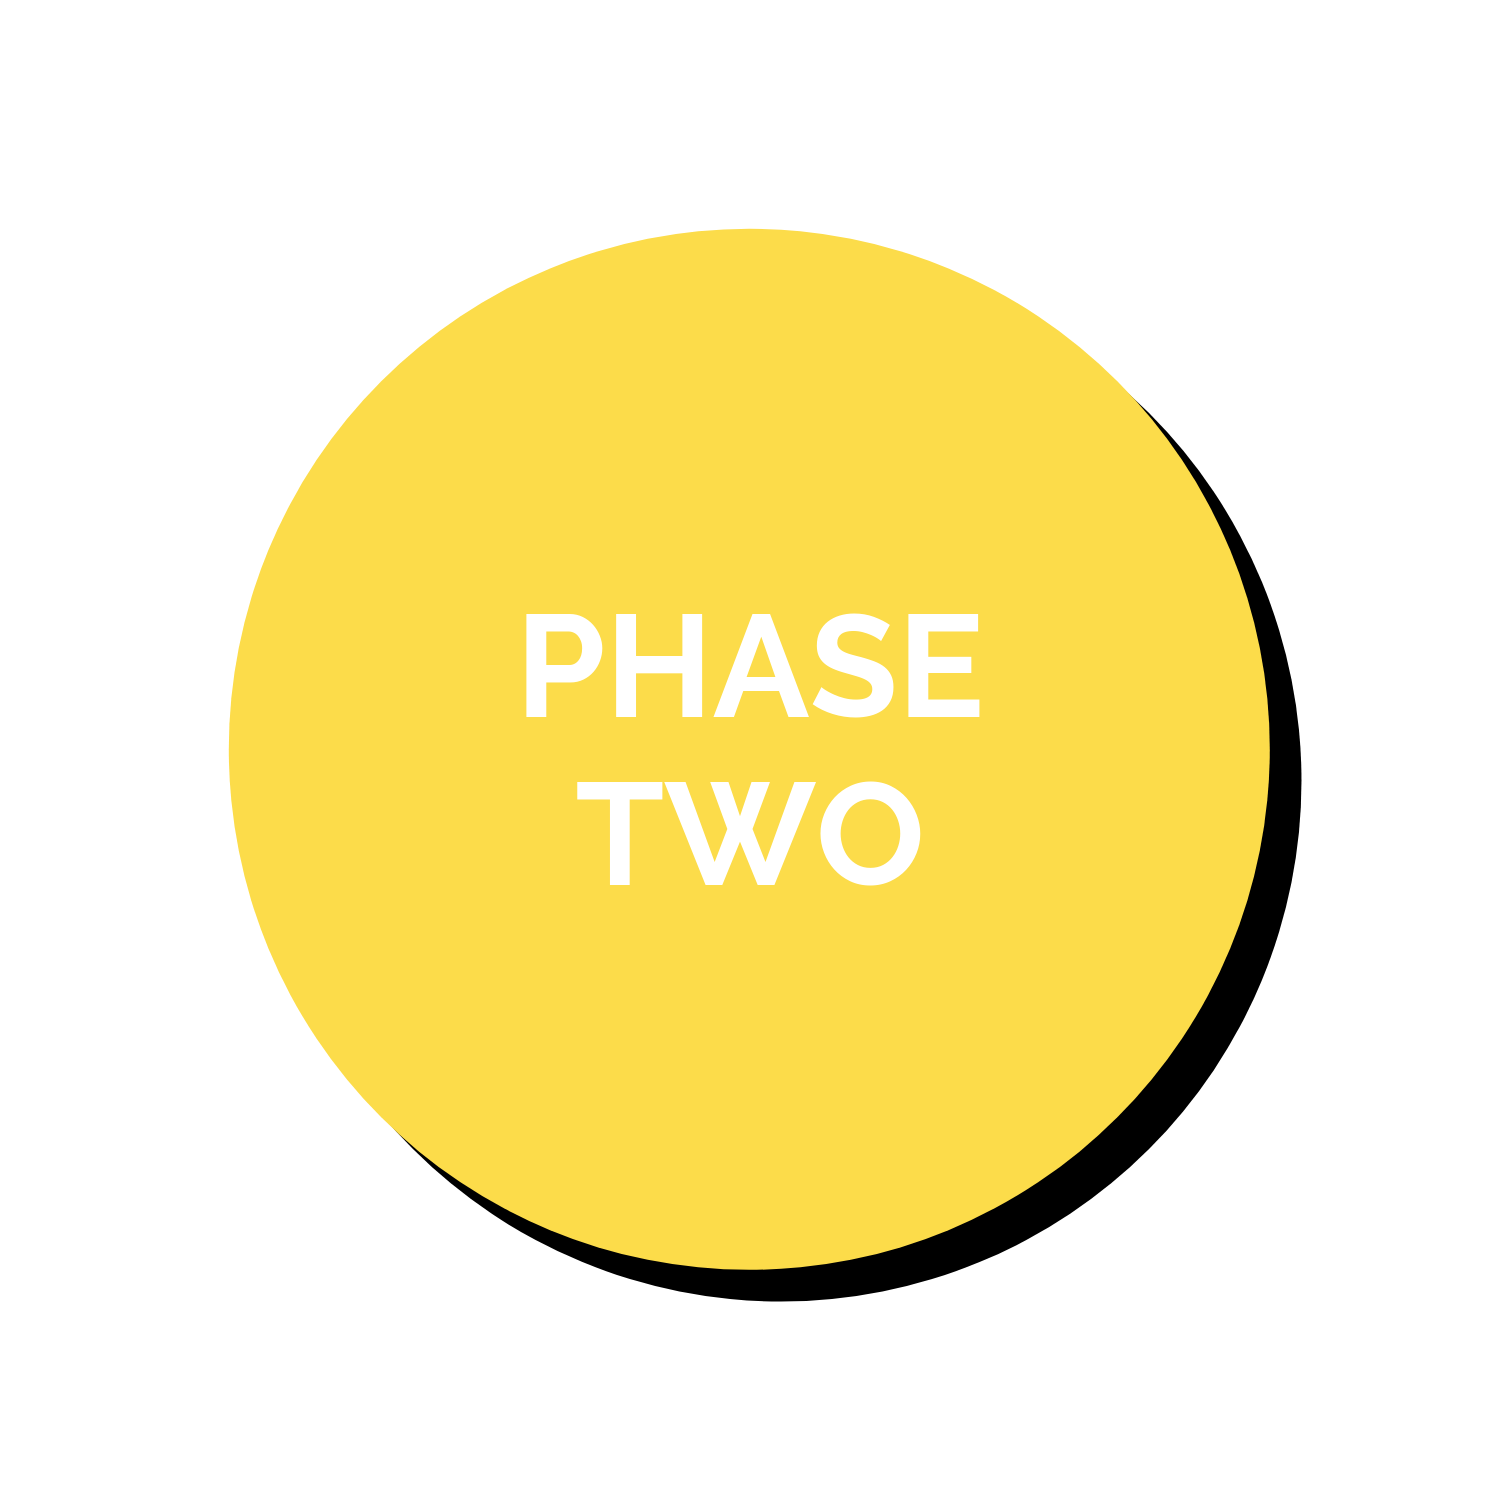 THE NEXT LEVEL - Once you have completed Phase 1: Foundations you will have the option to move on to Phase 2! Starting in January 2020 Hairdressers will join our Phase 2 BTC Course and salon leadership will join our Phase 2 Leadership Course! All students must complete Phase 1: Foundations in order to move forward. Are you ready to jump in?